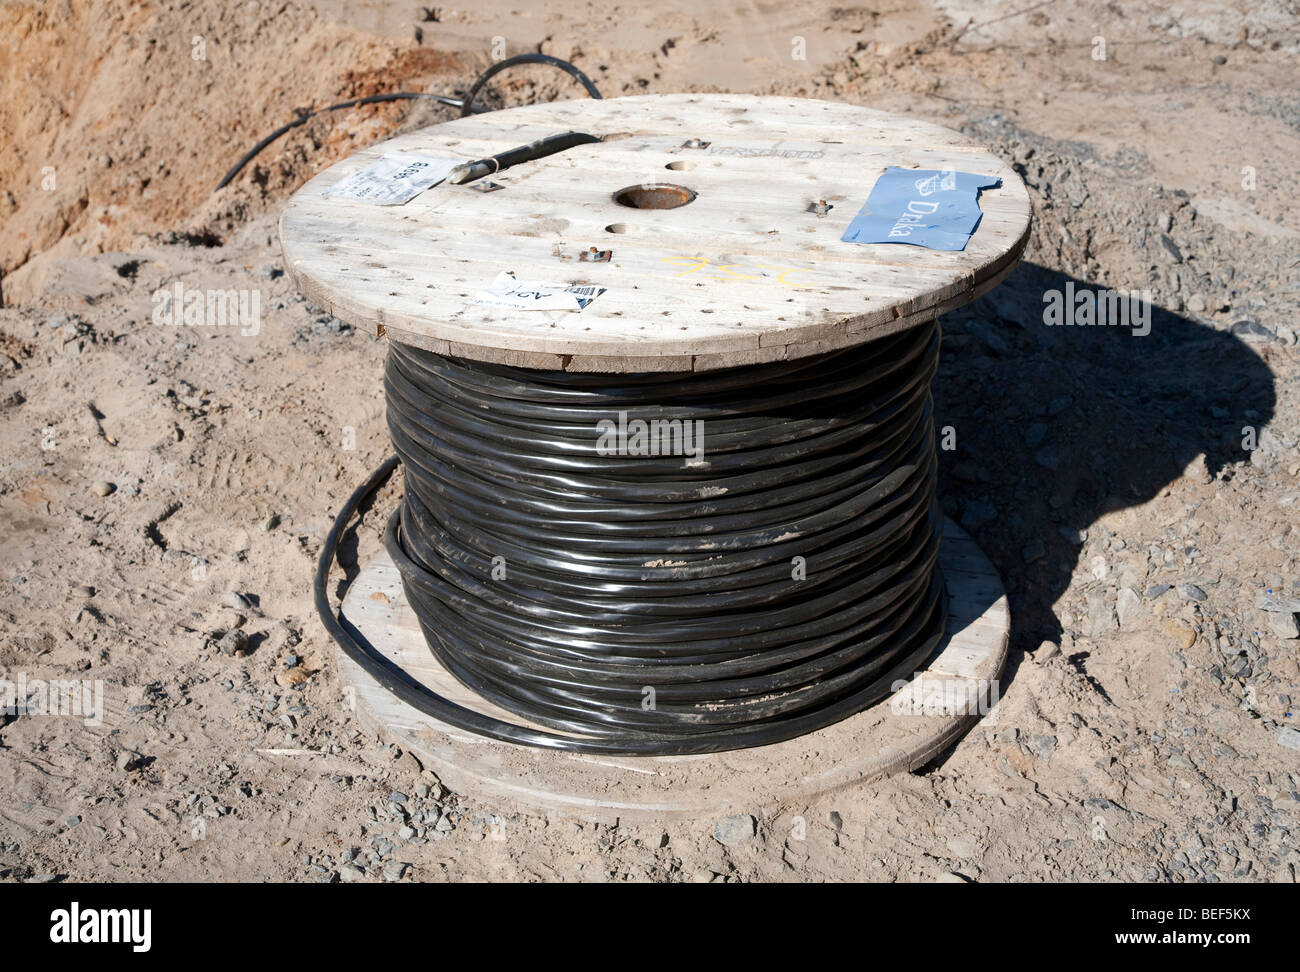 Spool Of Electric Wire Stockfotos & Spool Of Electric Wire Bilder ...